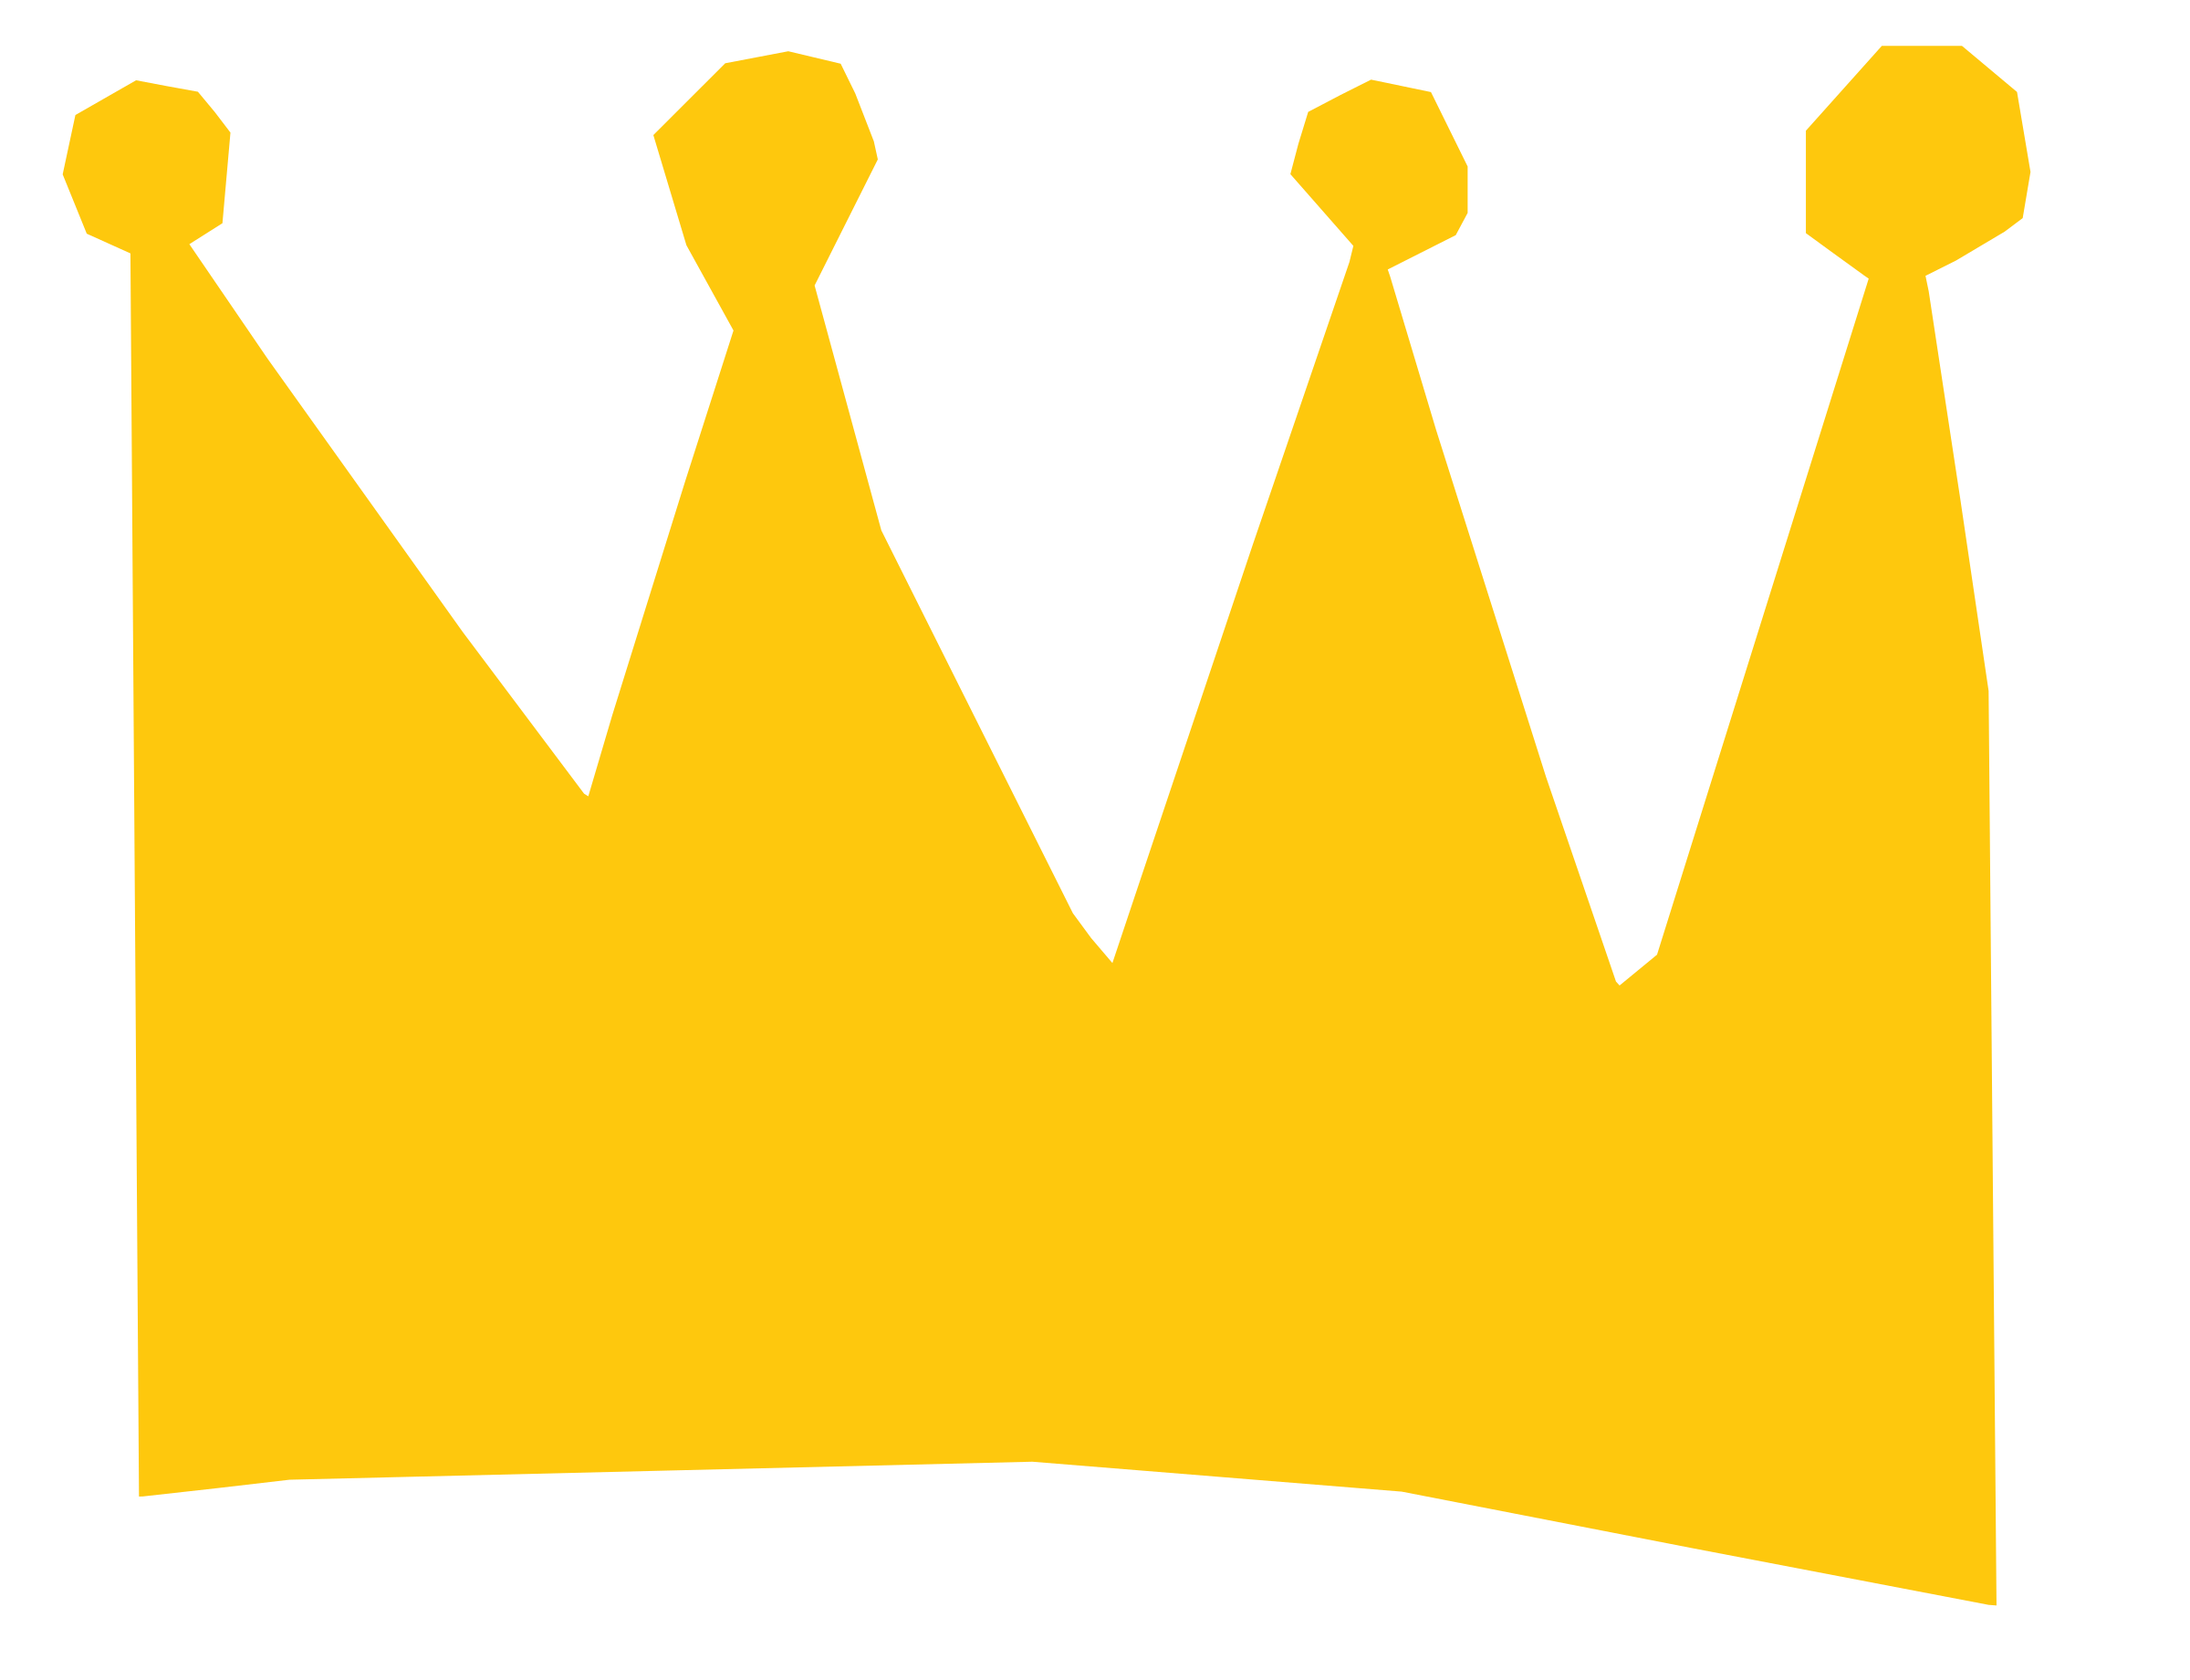 Yellow crown clipart picture free library Clipart - Crown refixed picture free library